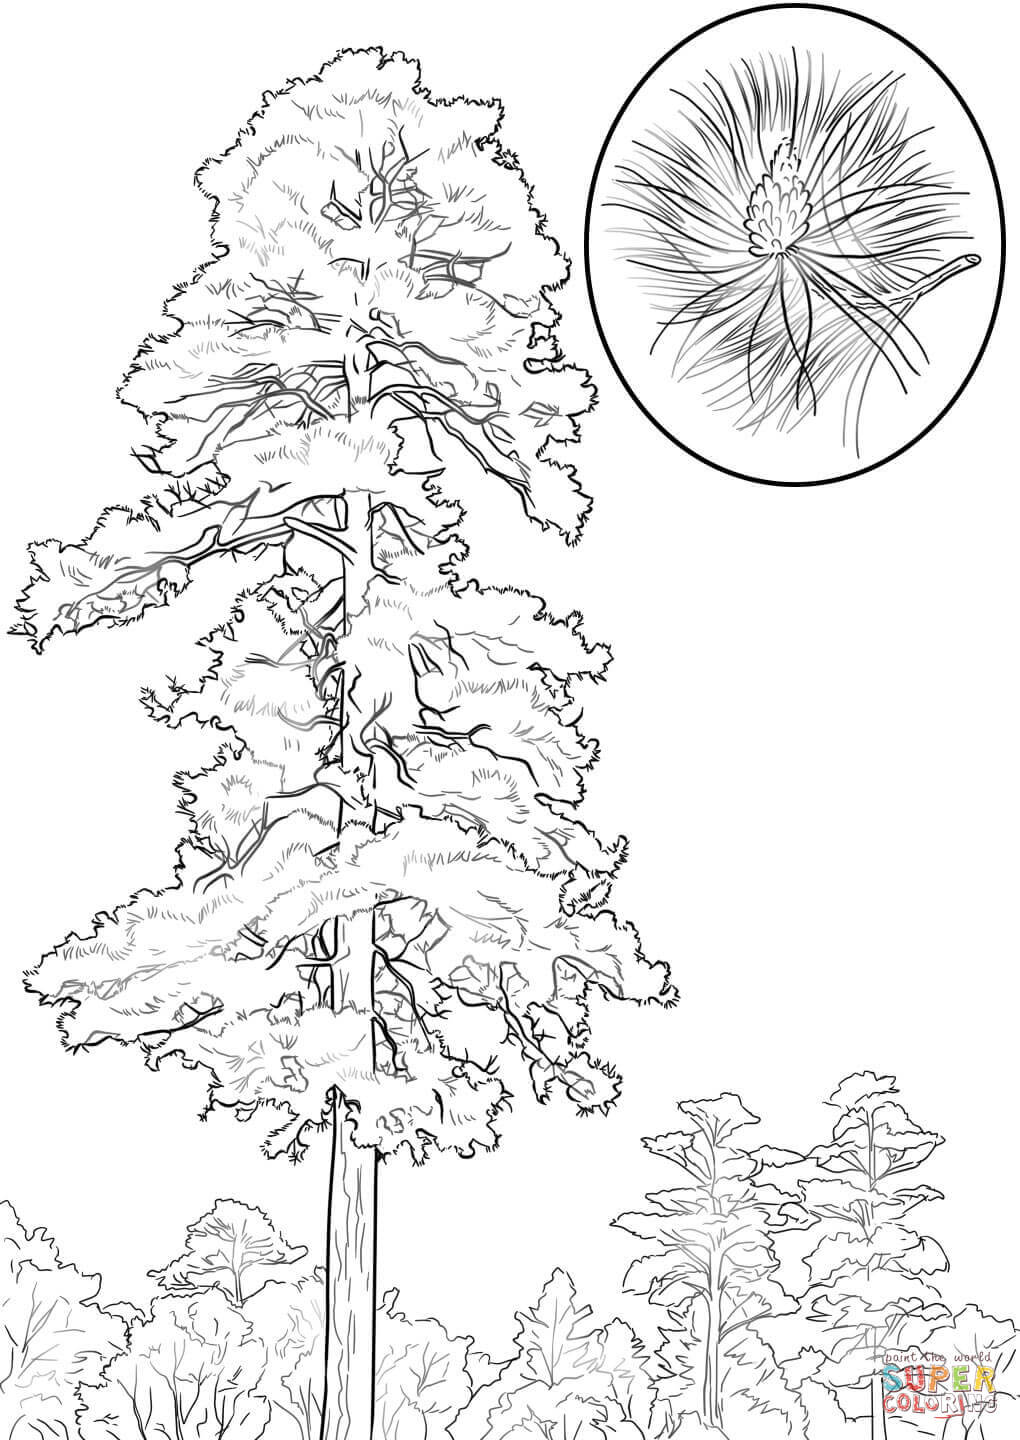 pine cone line drawing at getdrawings  free download